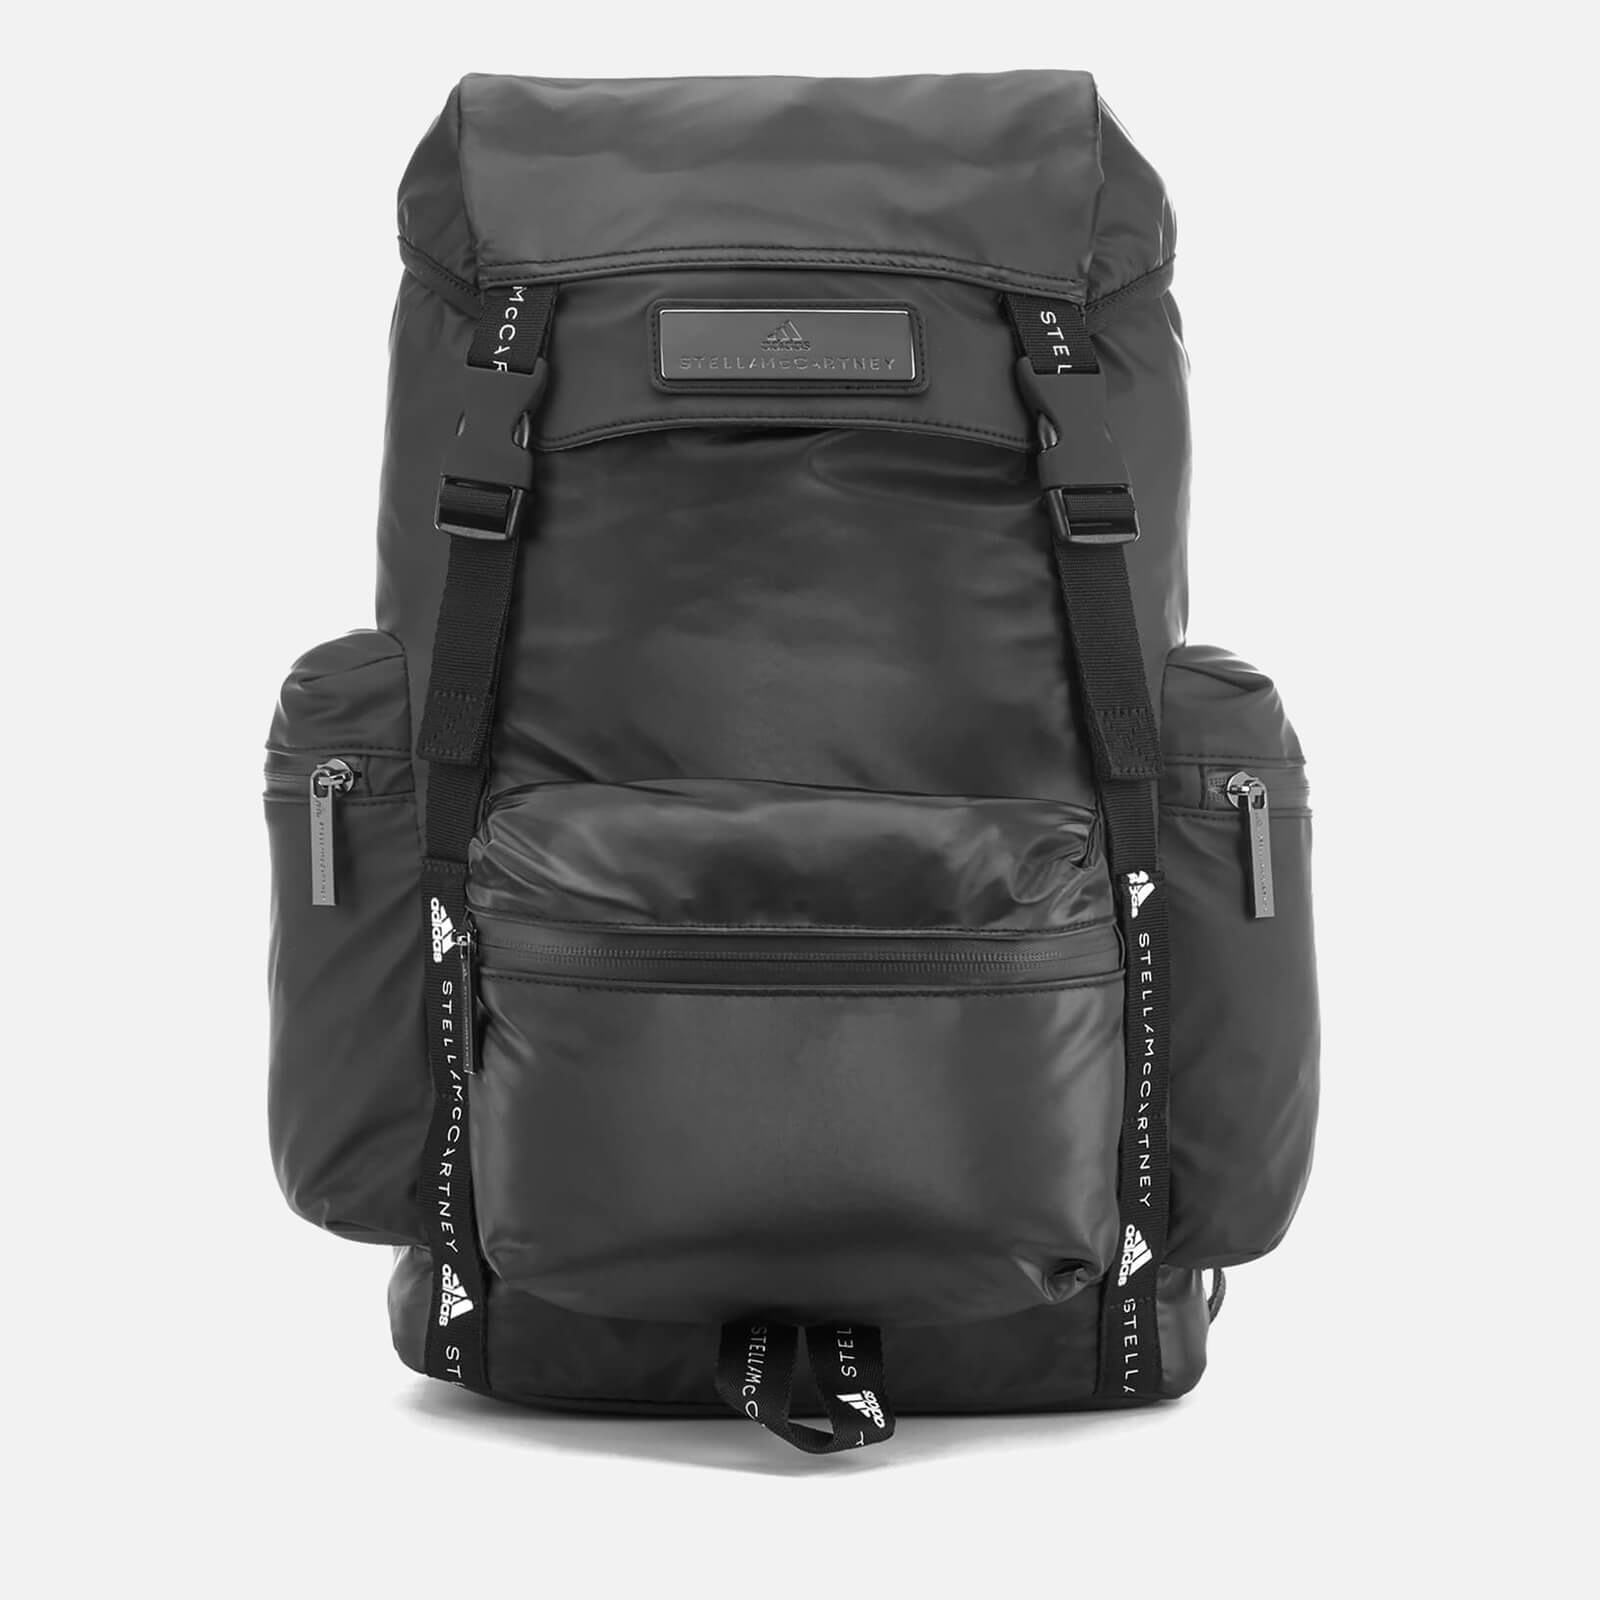 dd5c0a6254 adidas by Stella McCartney Women s Backpack - Black - Free UK Delivery over  £50